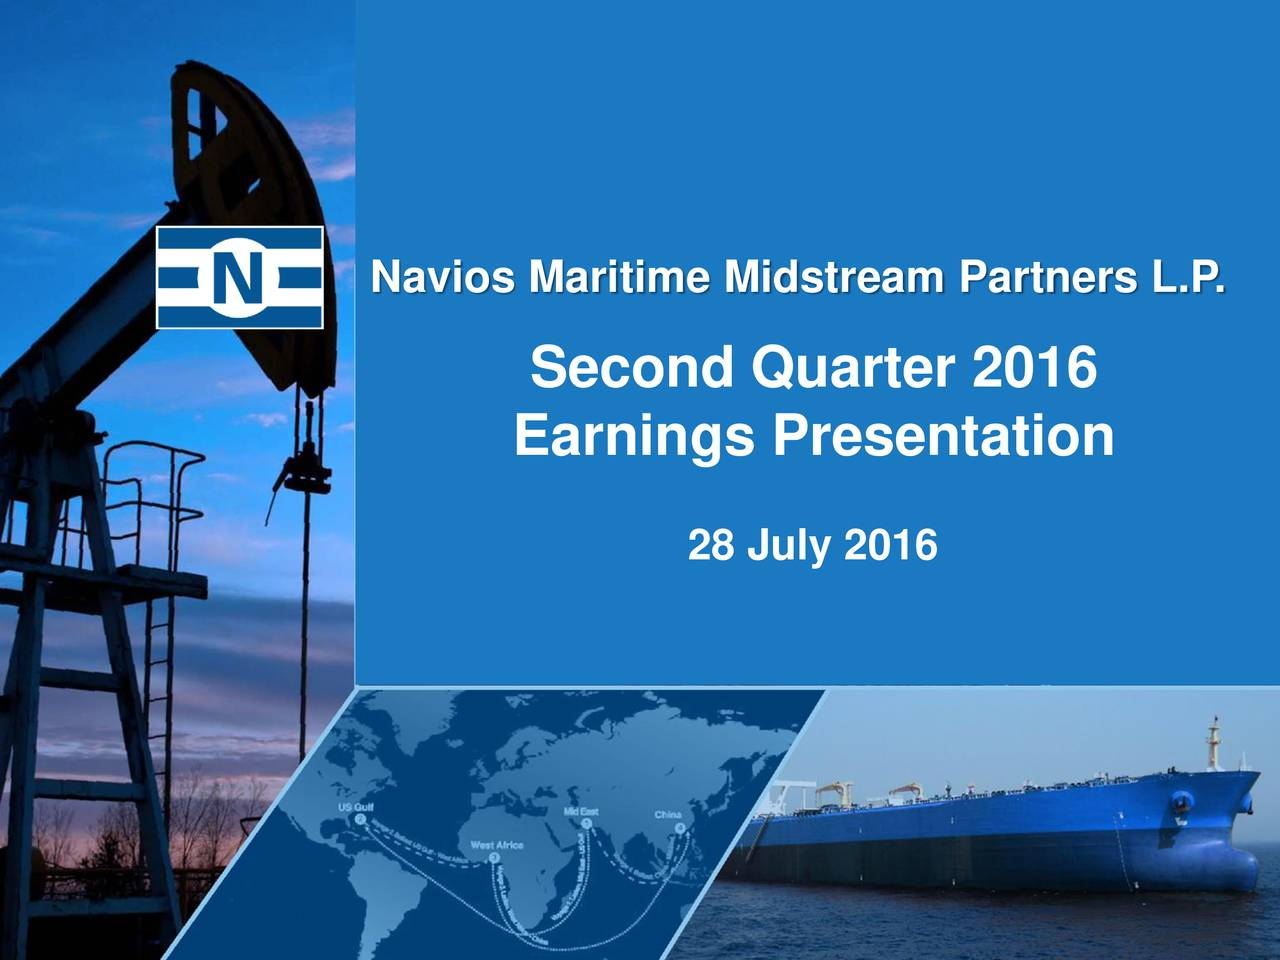 Second Quarter 2016 Earnings Presentation 28 July 2016